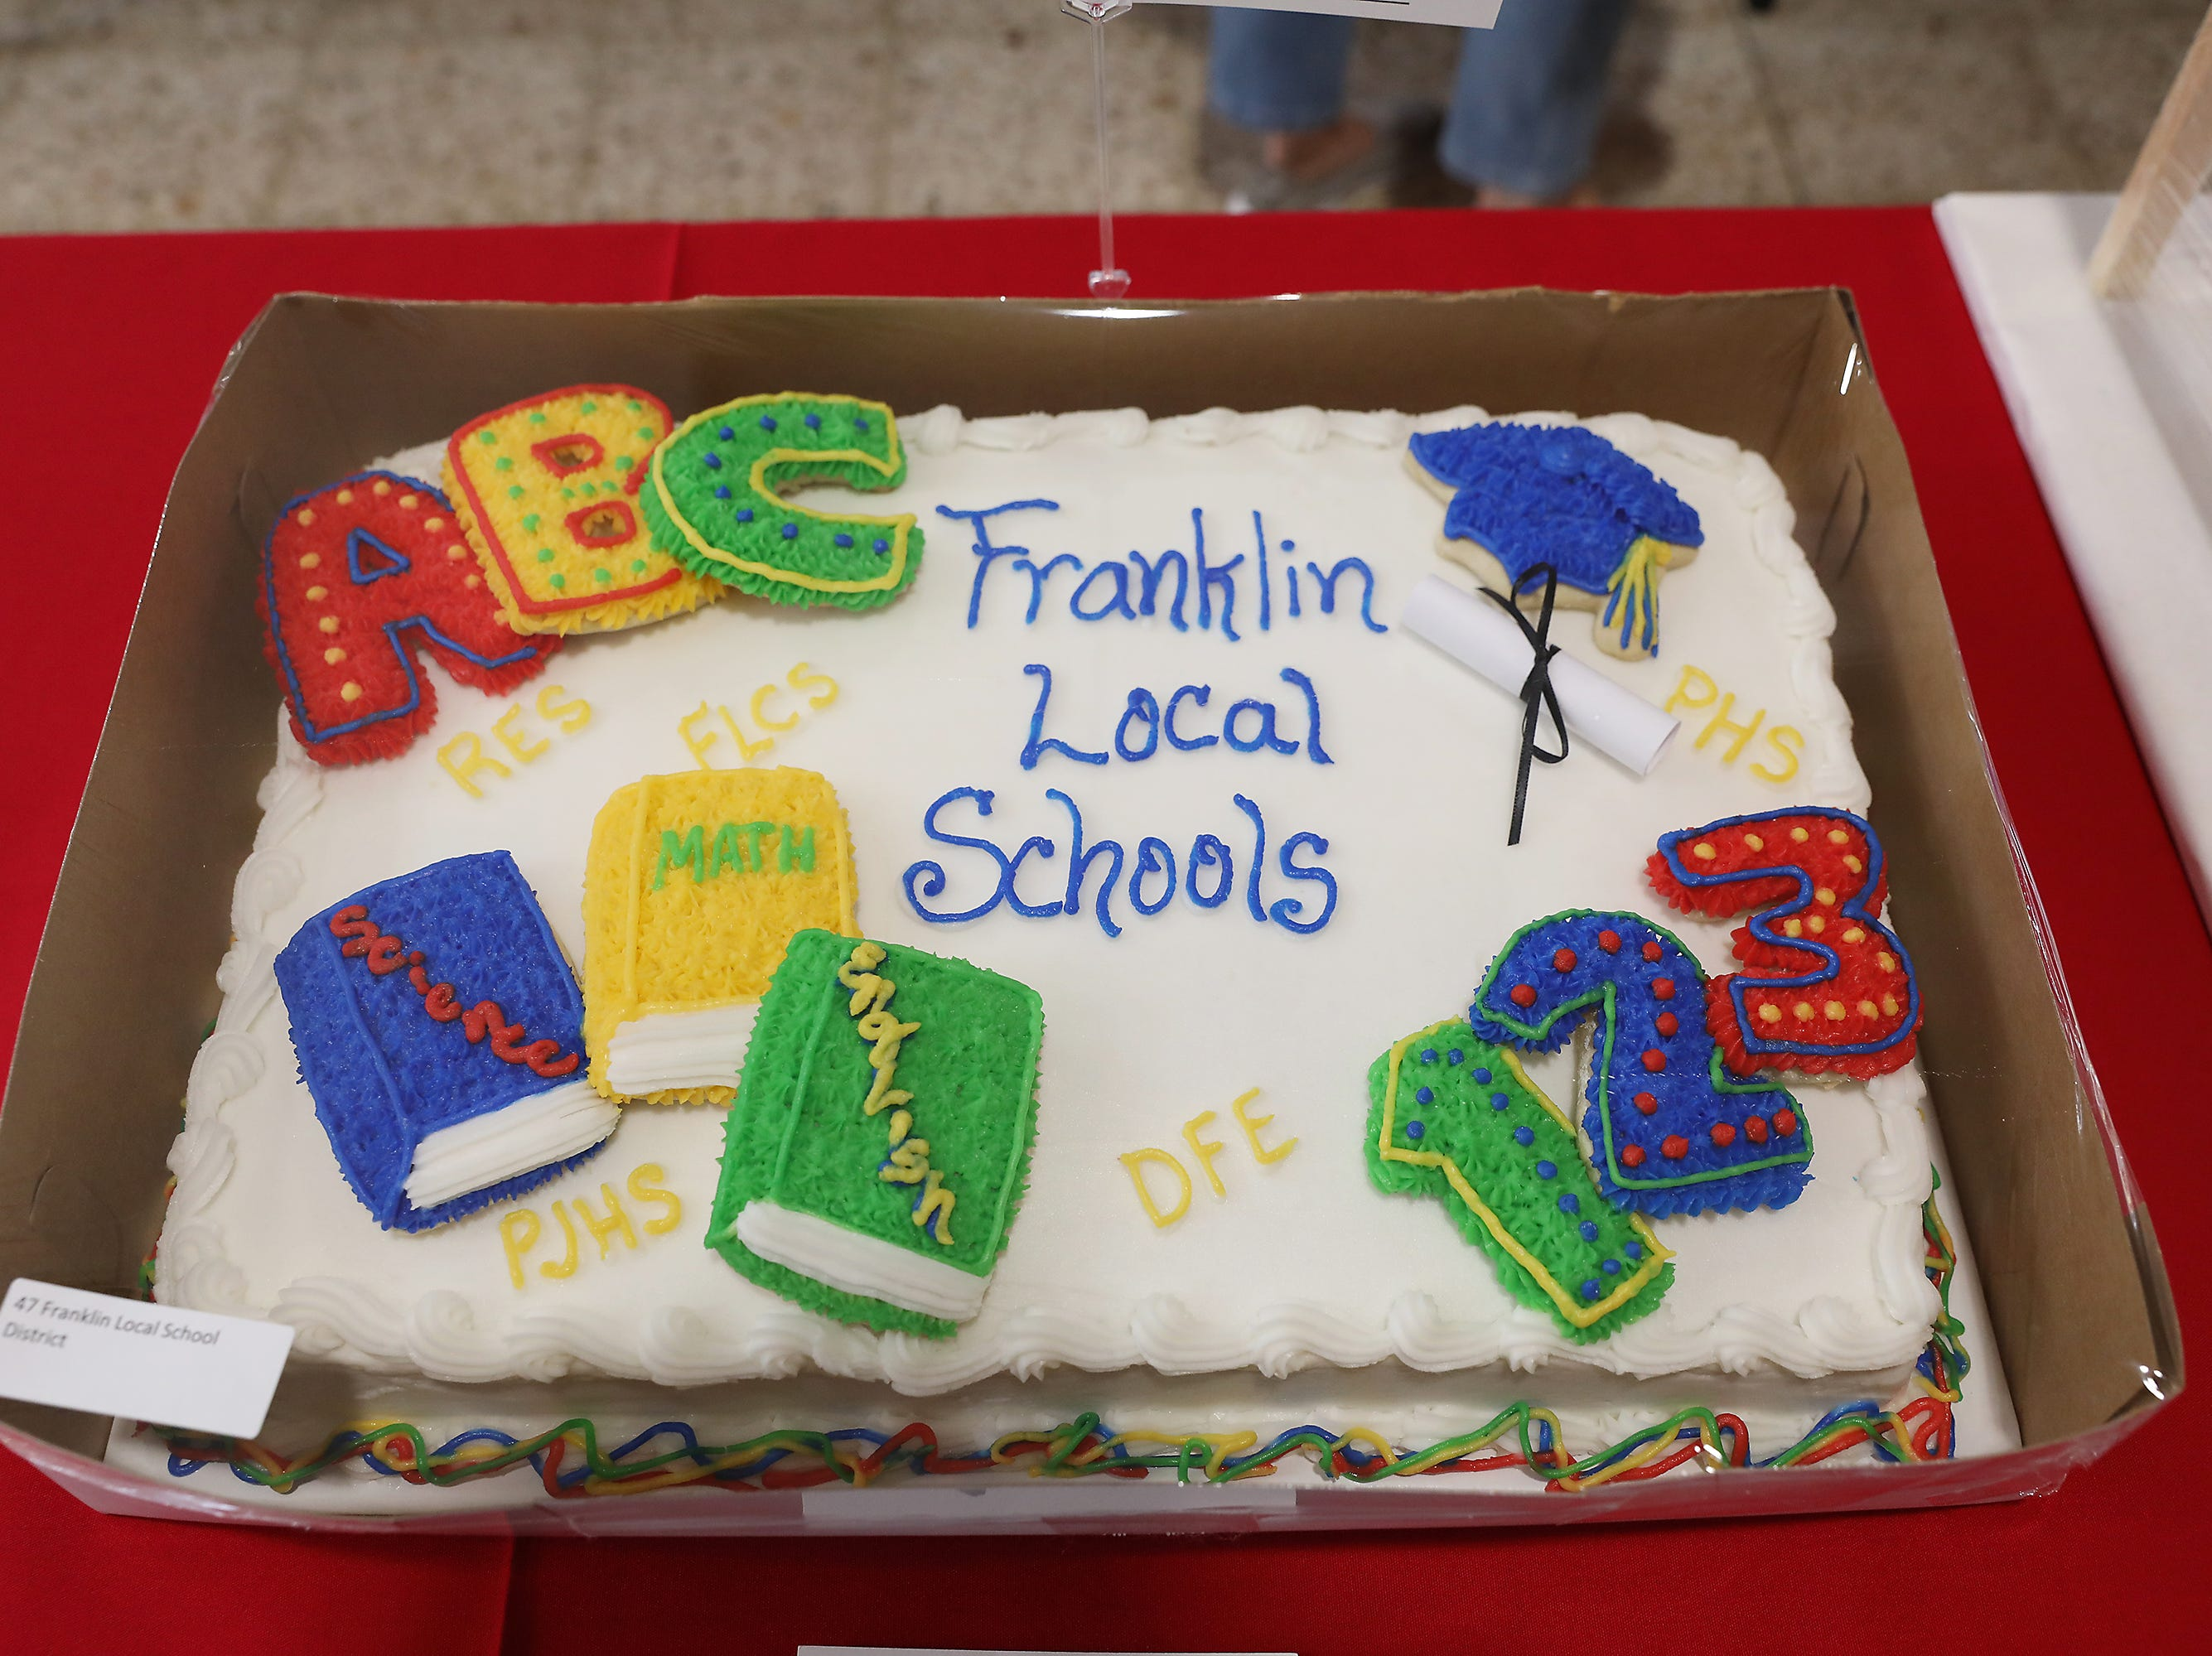 10:15 A.M. Thursday cake 47 Franklin Local School District